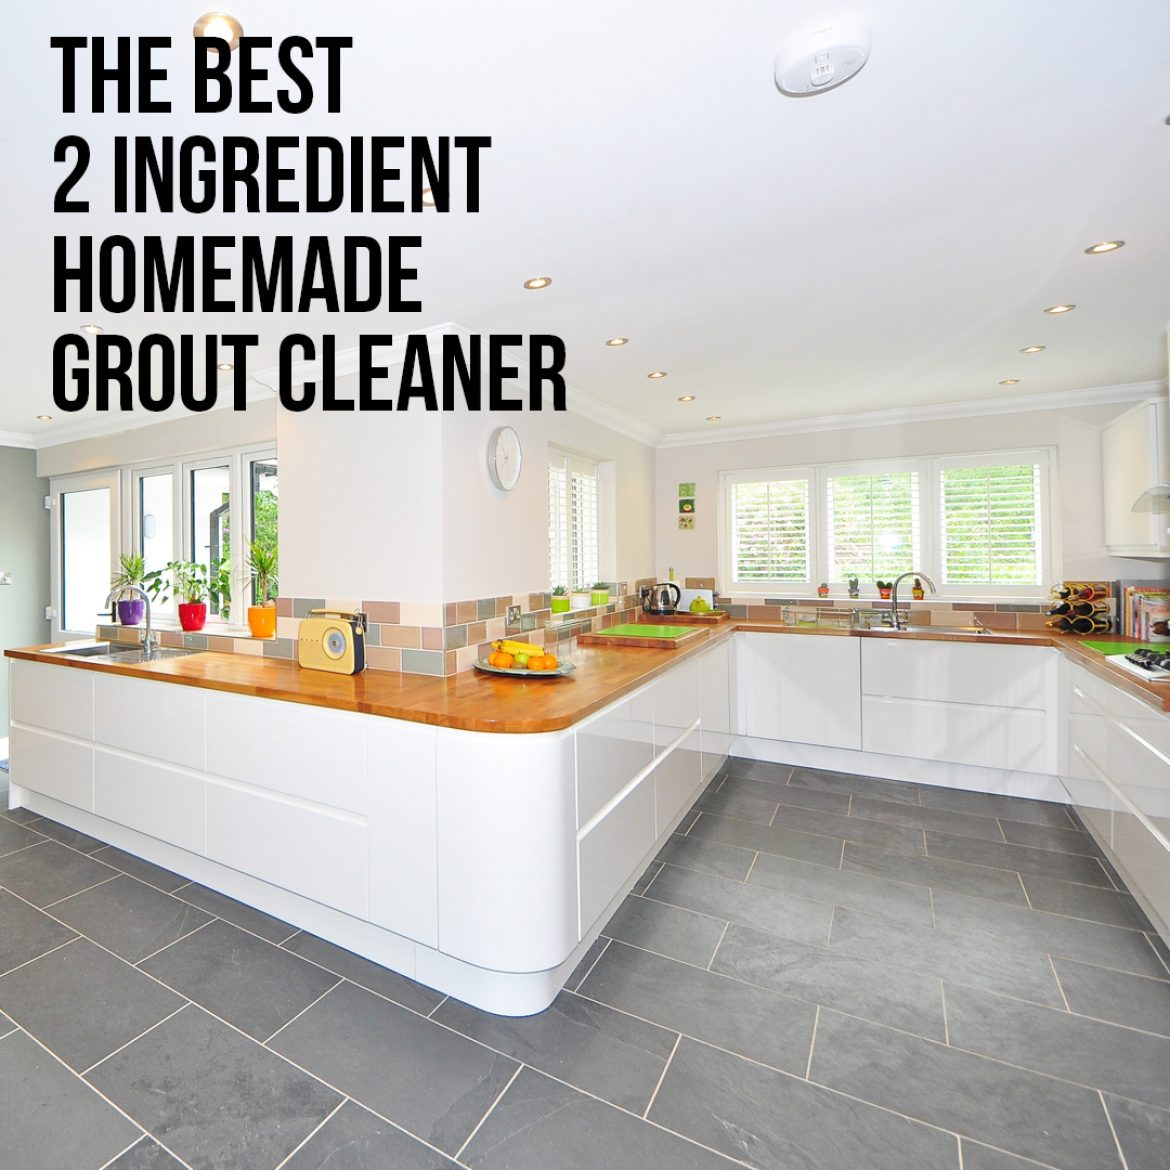 The Best 2 Ingredient Homemade Grout Cleaner | SelectRE Boston